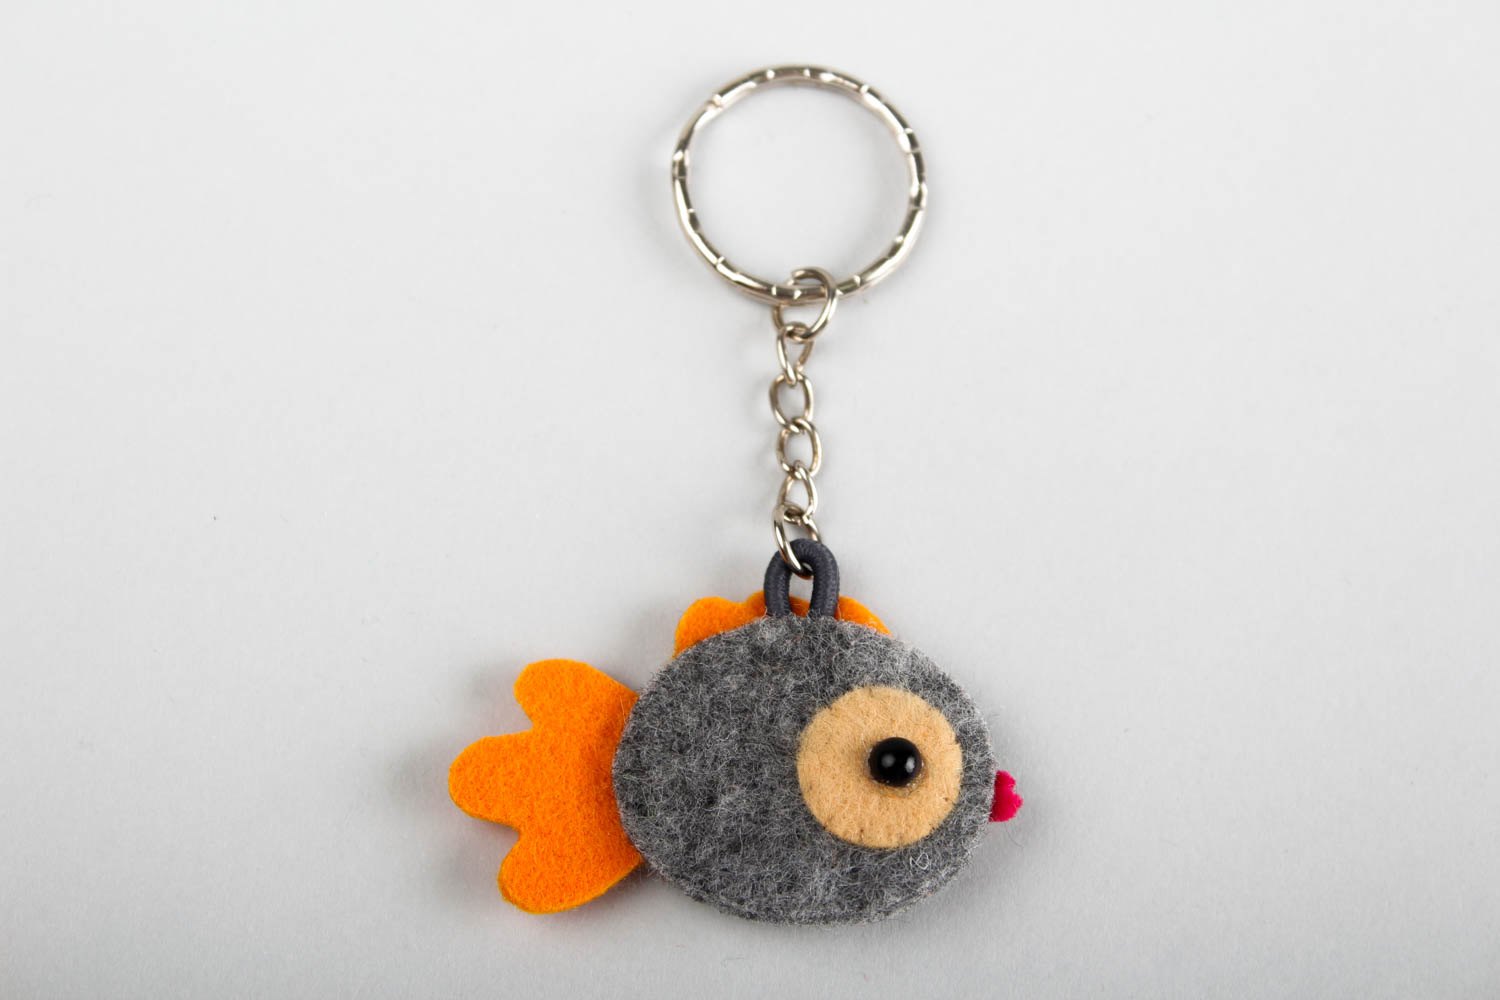 Funny toys handmade woolen keychain felted toy key ideas present for kids photo 5